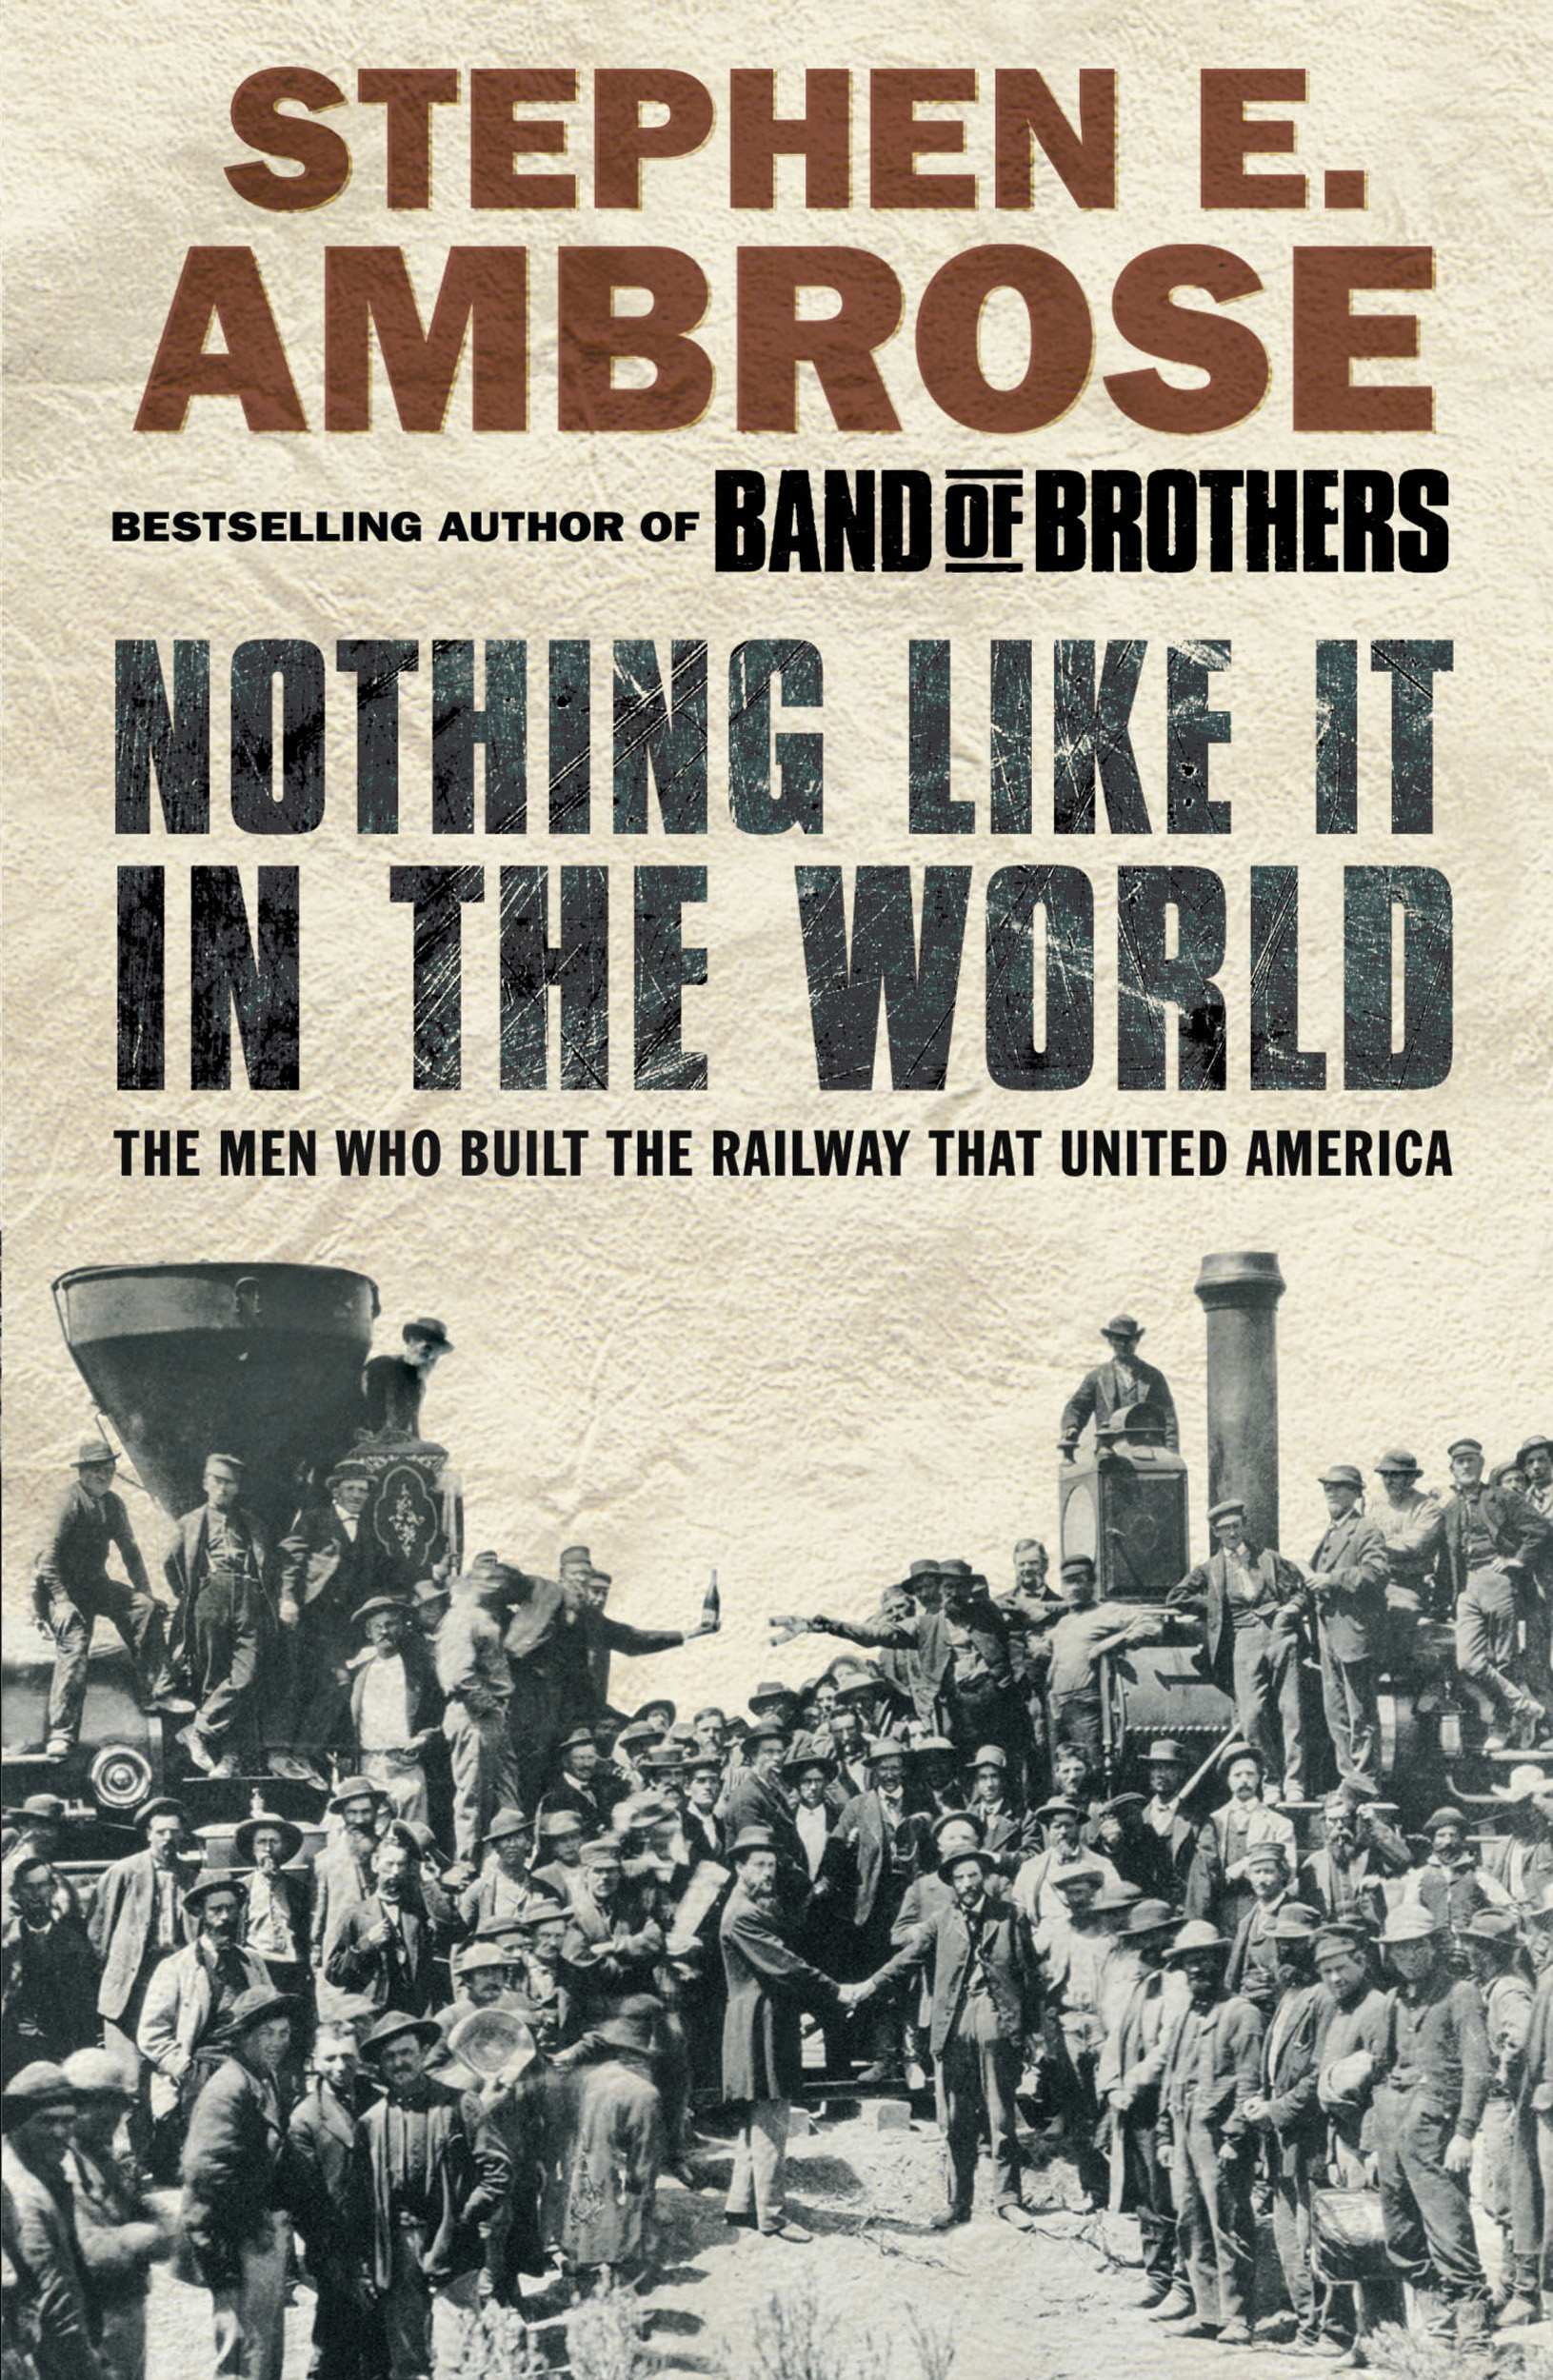 nothing like it in the world by Stephen ambrose: a guide for appreciating our history stephen e ambrose's histories are as vivid as screenplays one moment you're overlooking the distant battlefield, the next you're huddled head-to-head with the generals in the command tent.